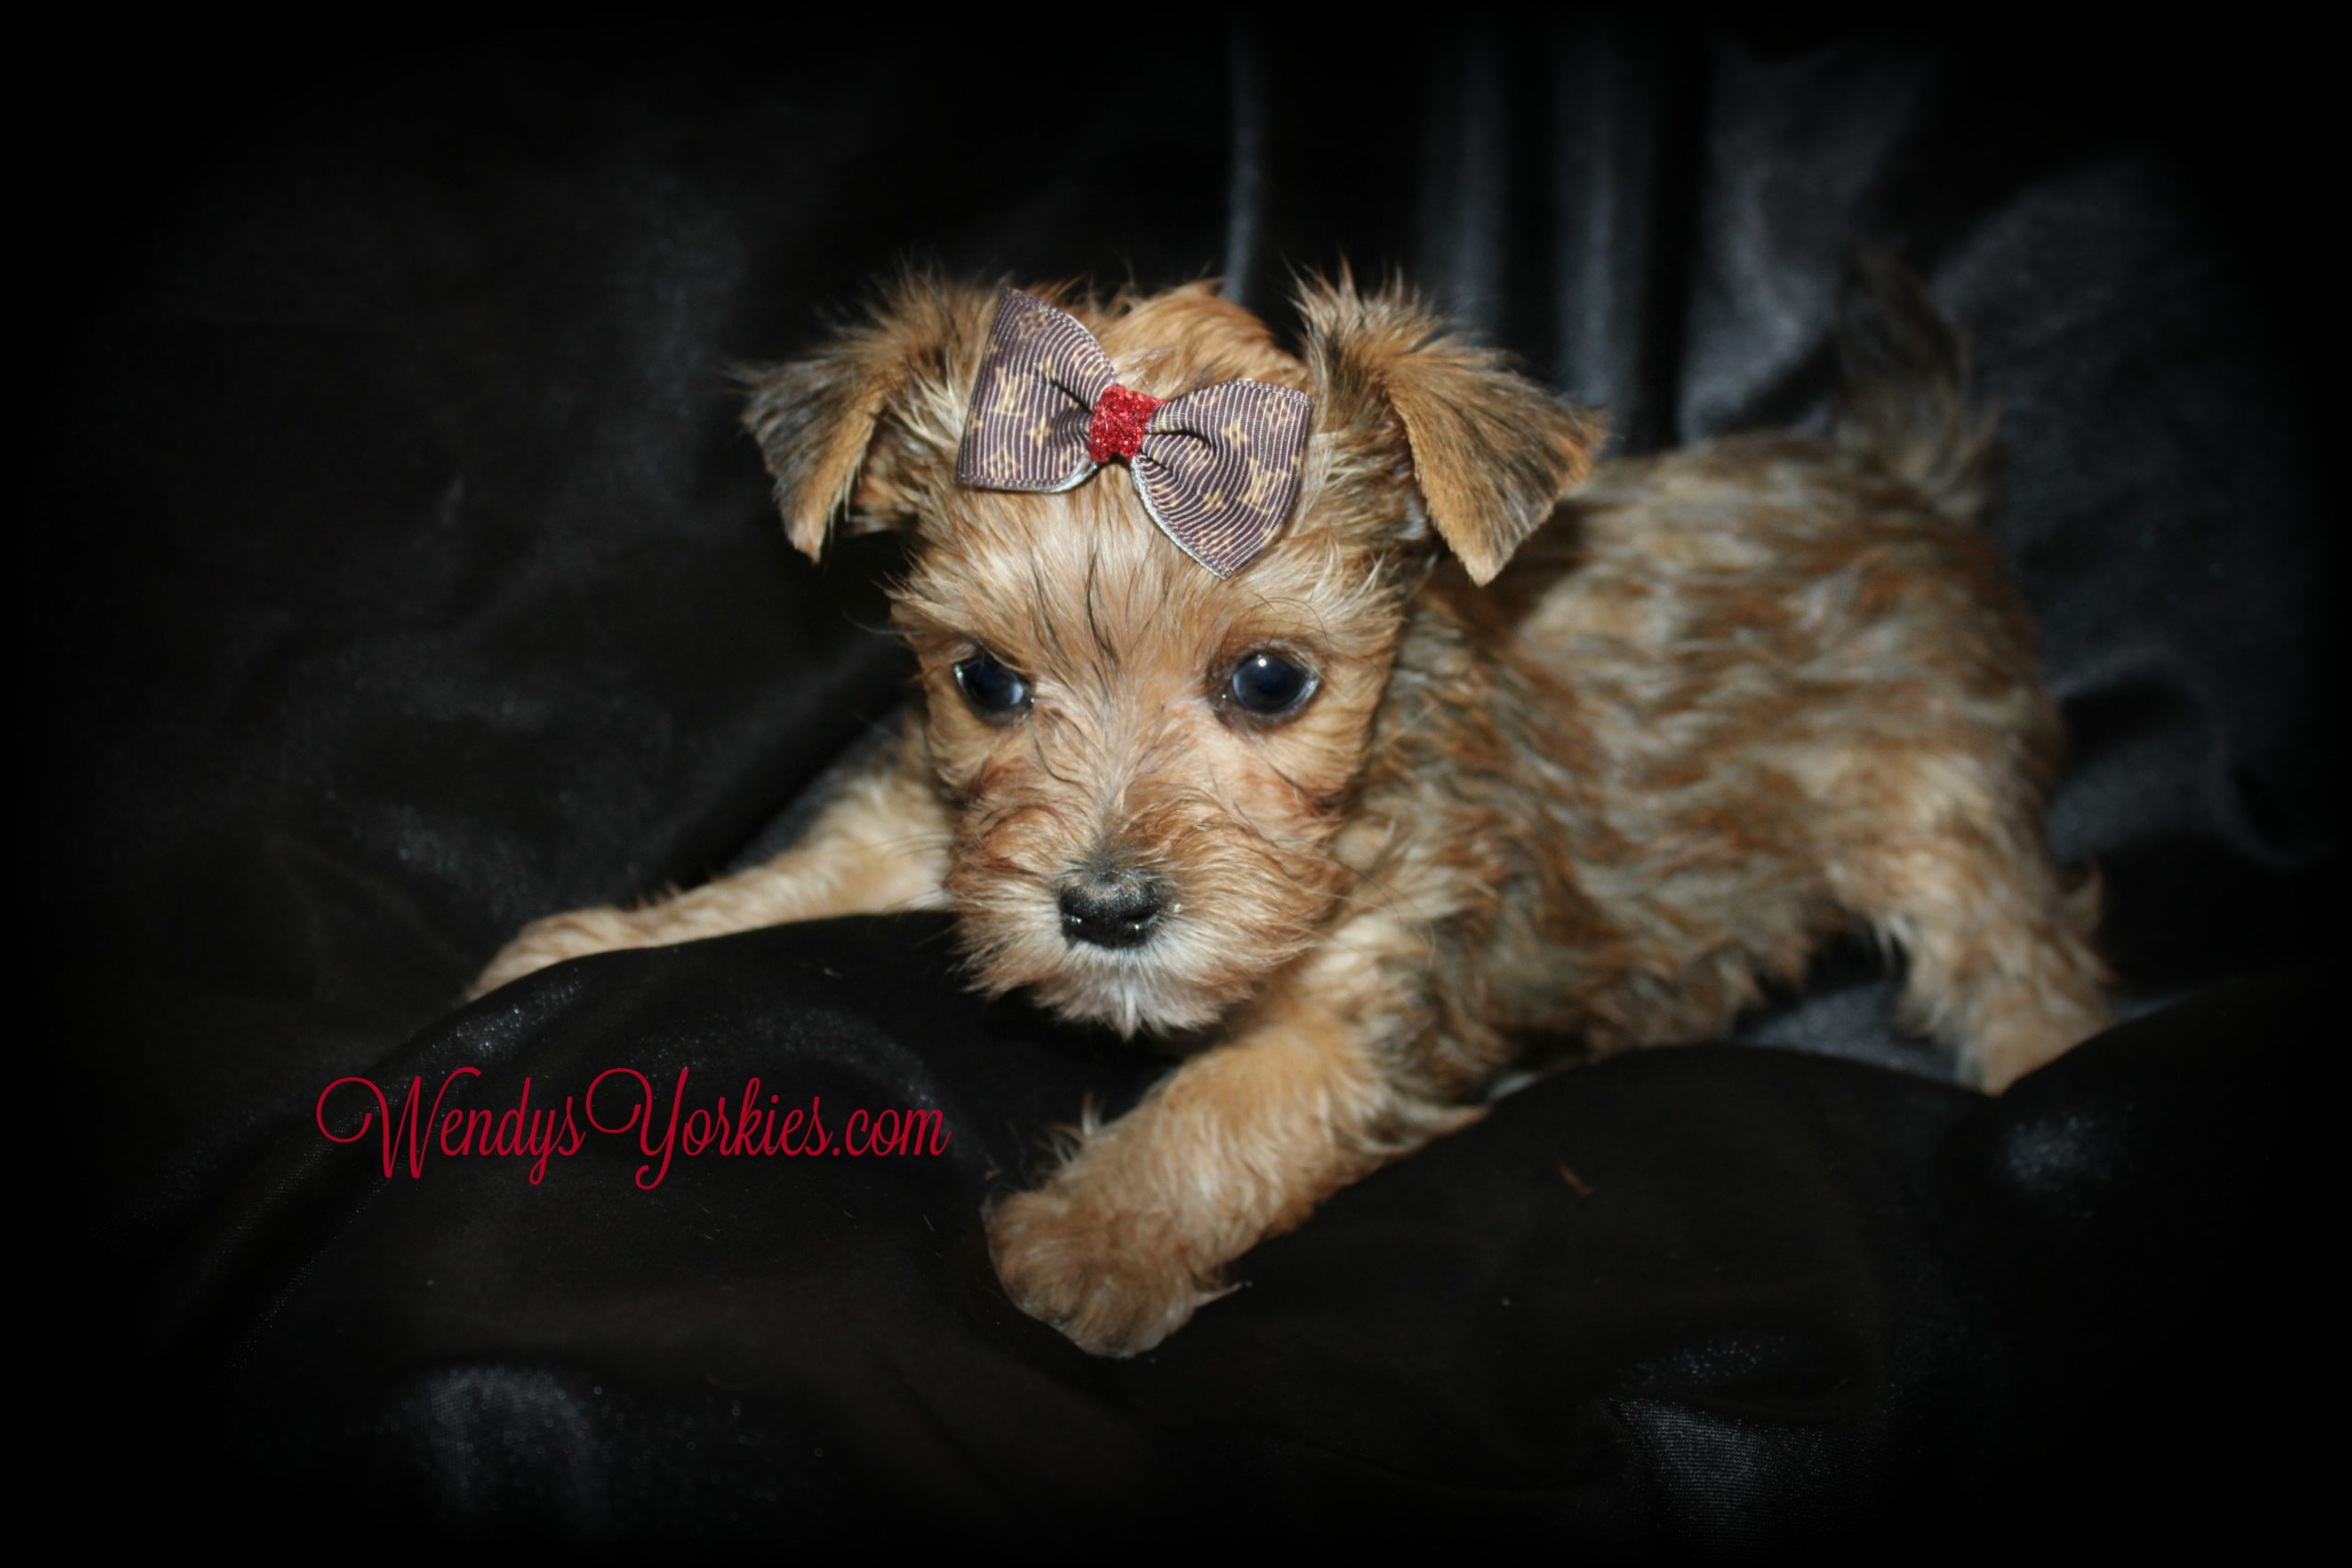 Teacup Yorkie puppies for sale, River,WendysYorkies.com